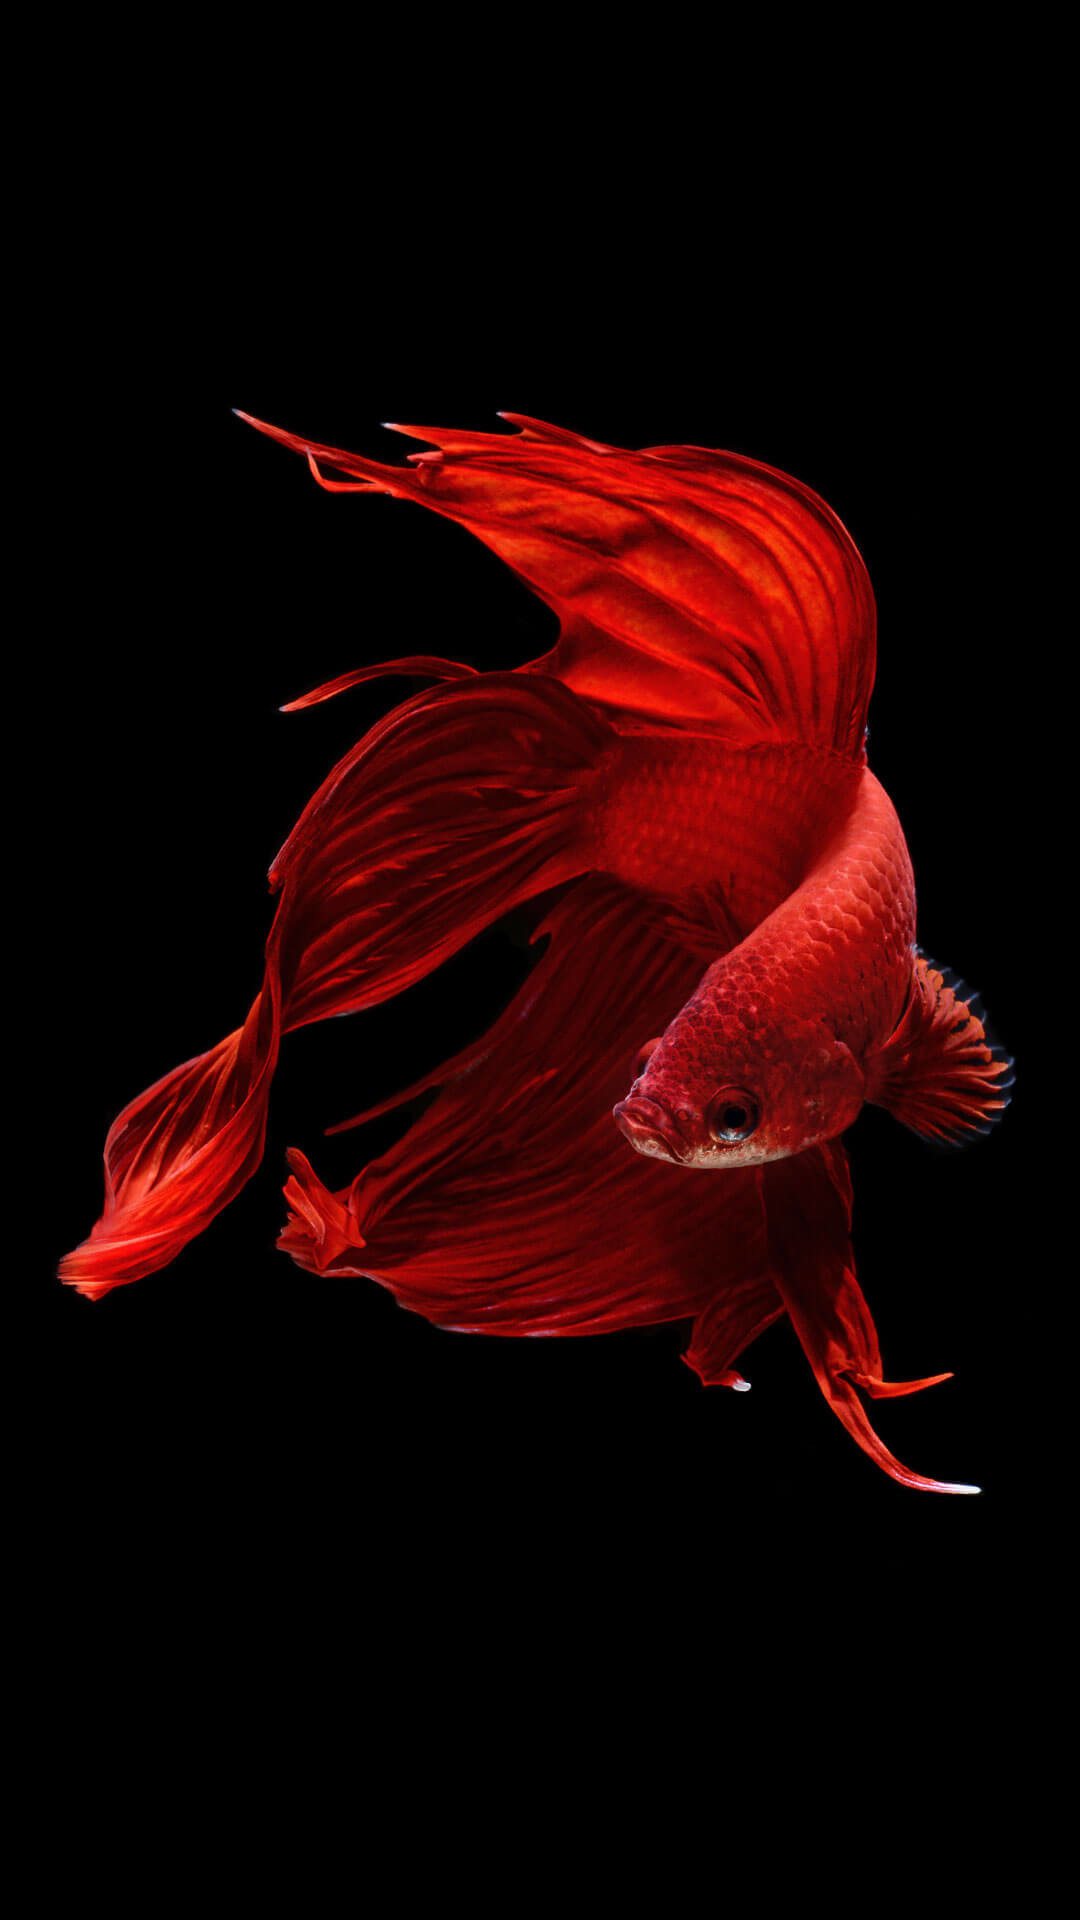 1080x1920 Betta Fish iPhone 6 And iPhone 6s Wallpaper HD